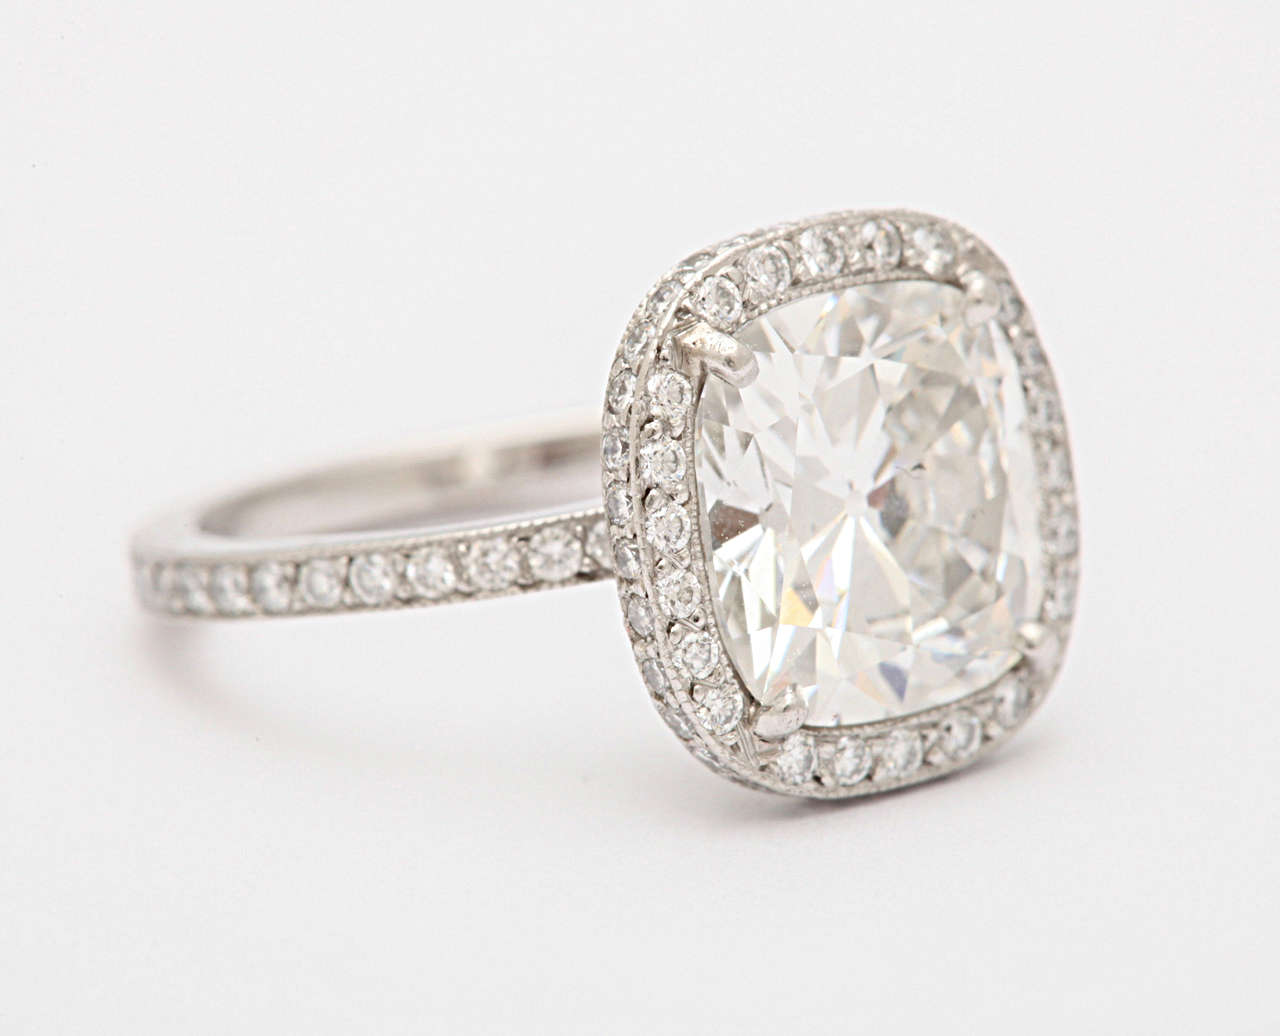 Cartier Cushion Shaped Diamond Engagement Ring At 1stdibs